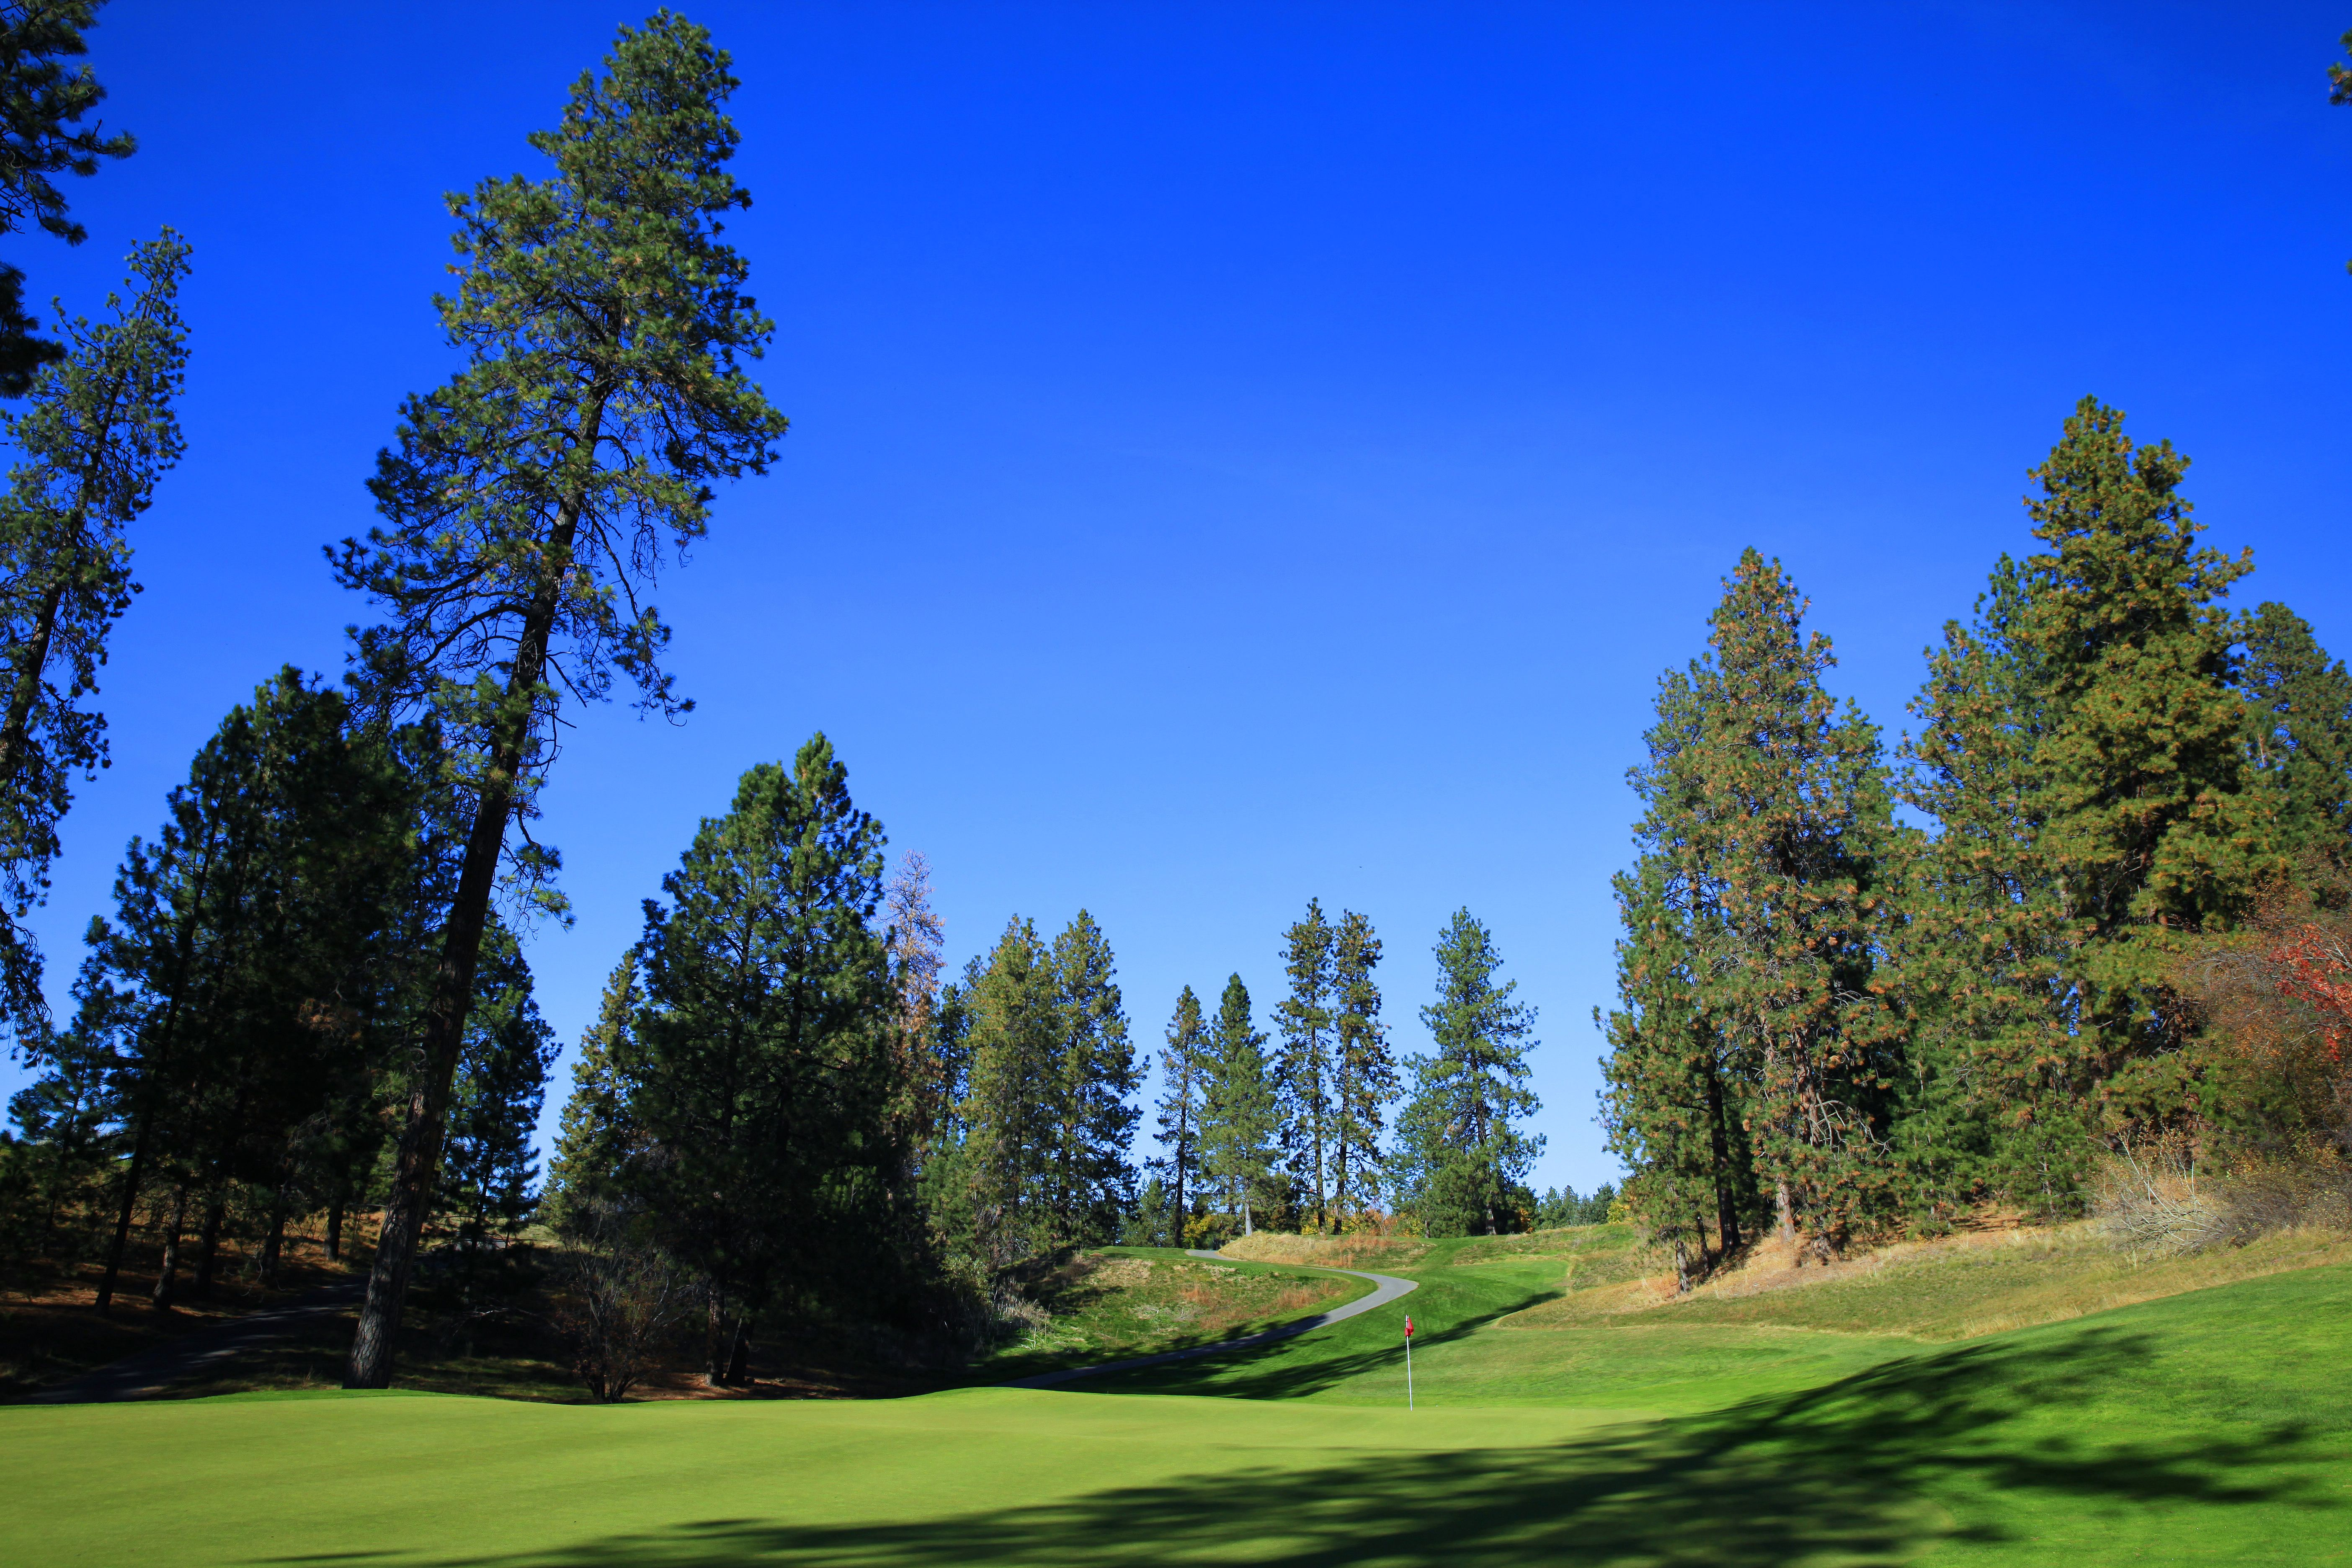 Liberty Lake Golf Course Hole 16 Golf Courses Golf Inspiration Golf Vacations